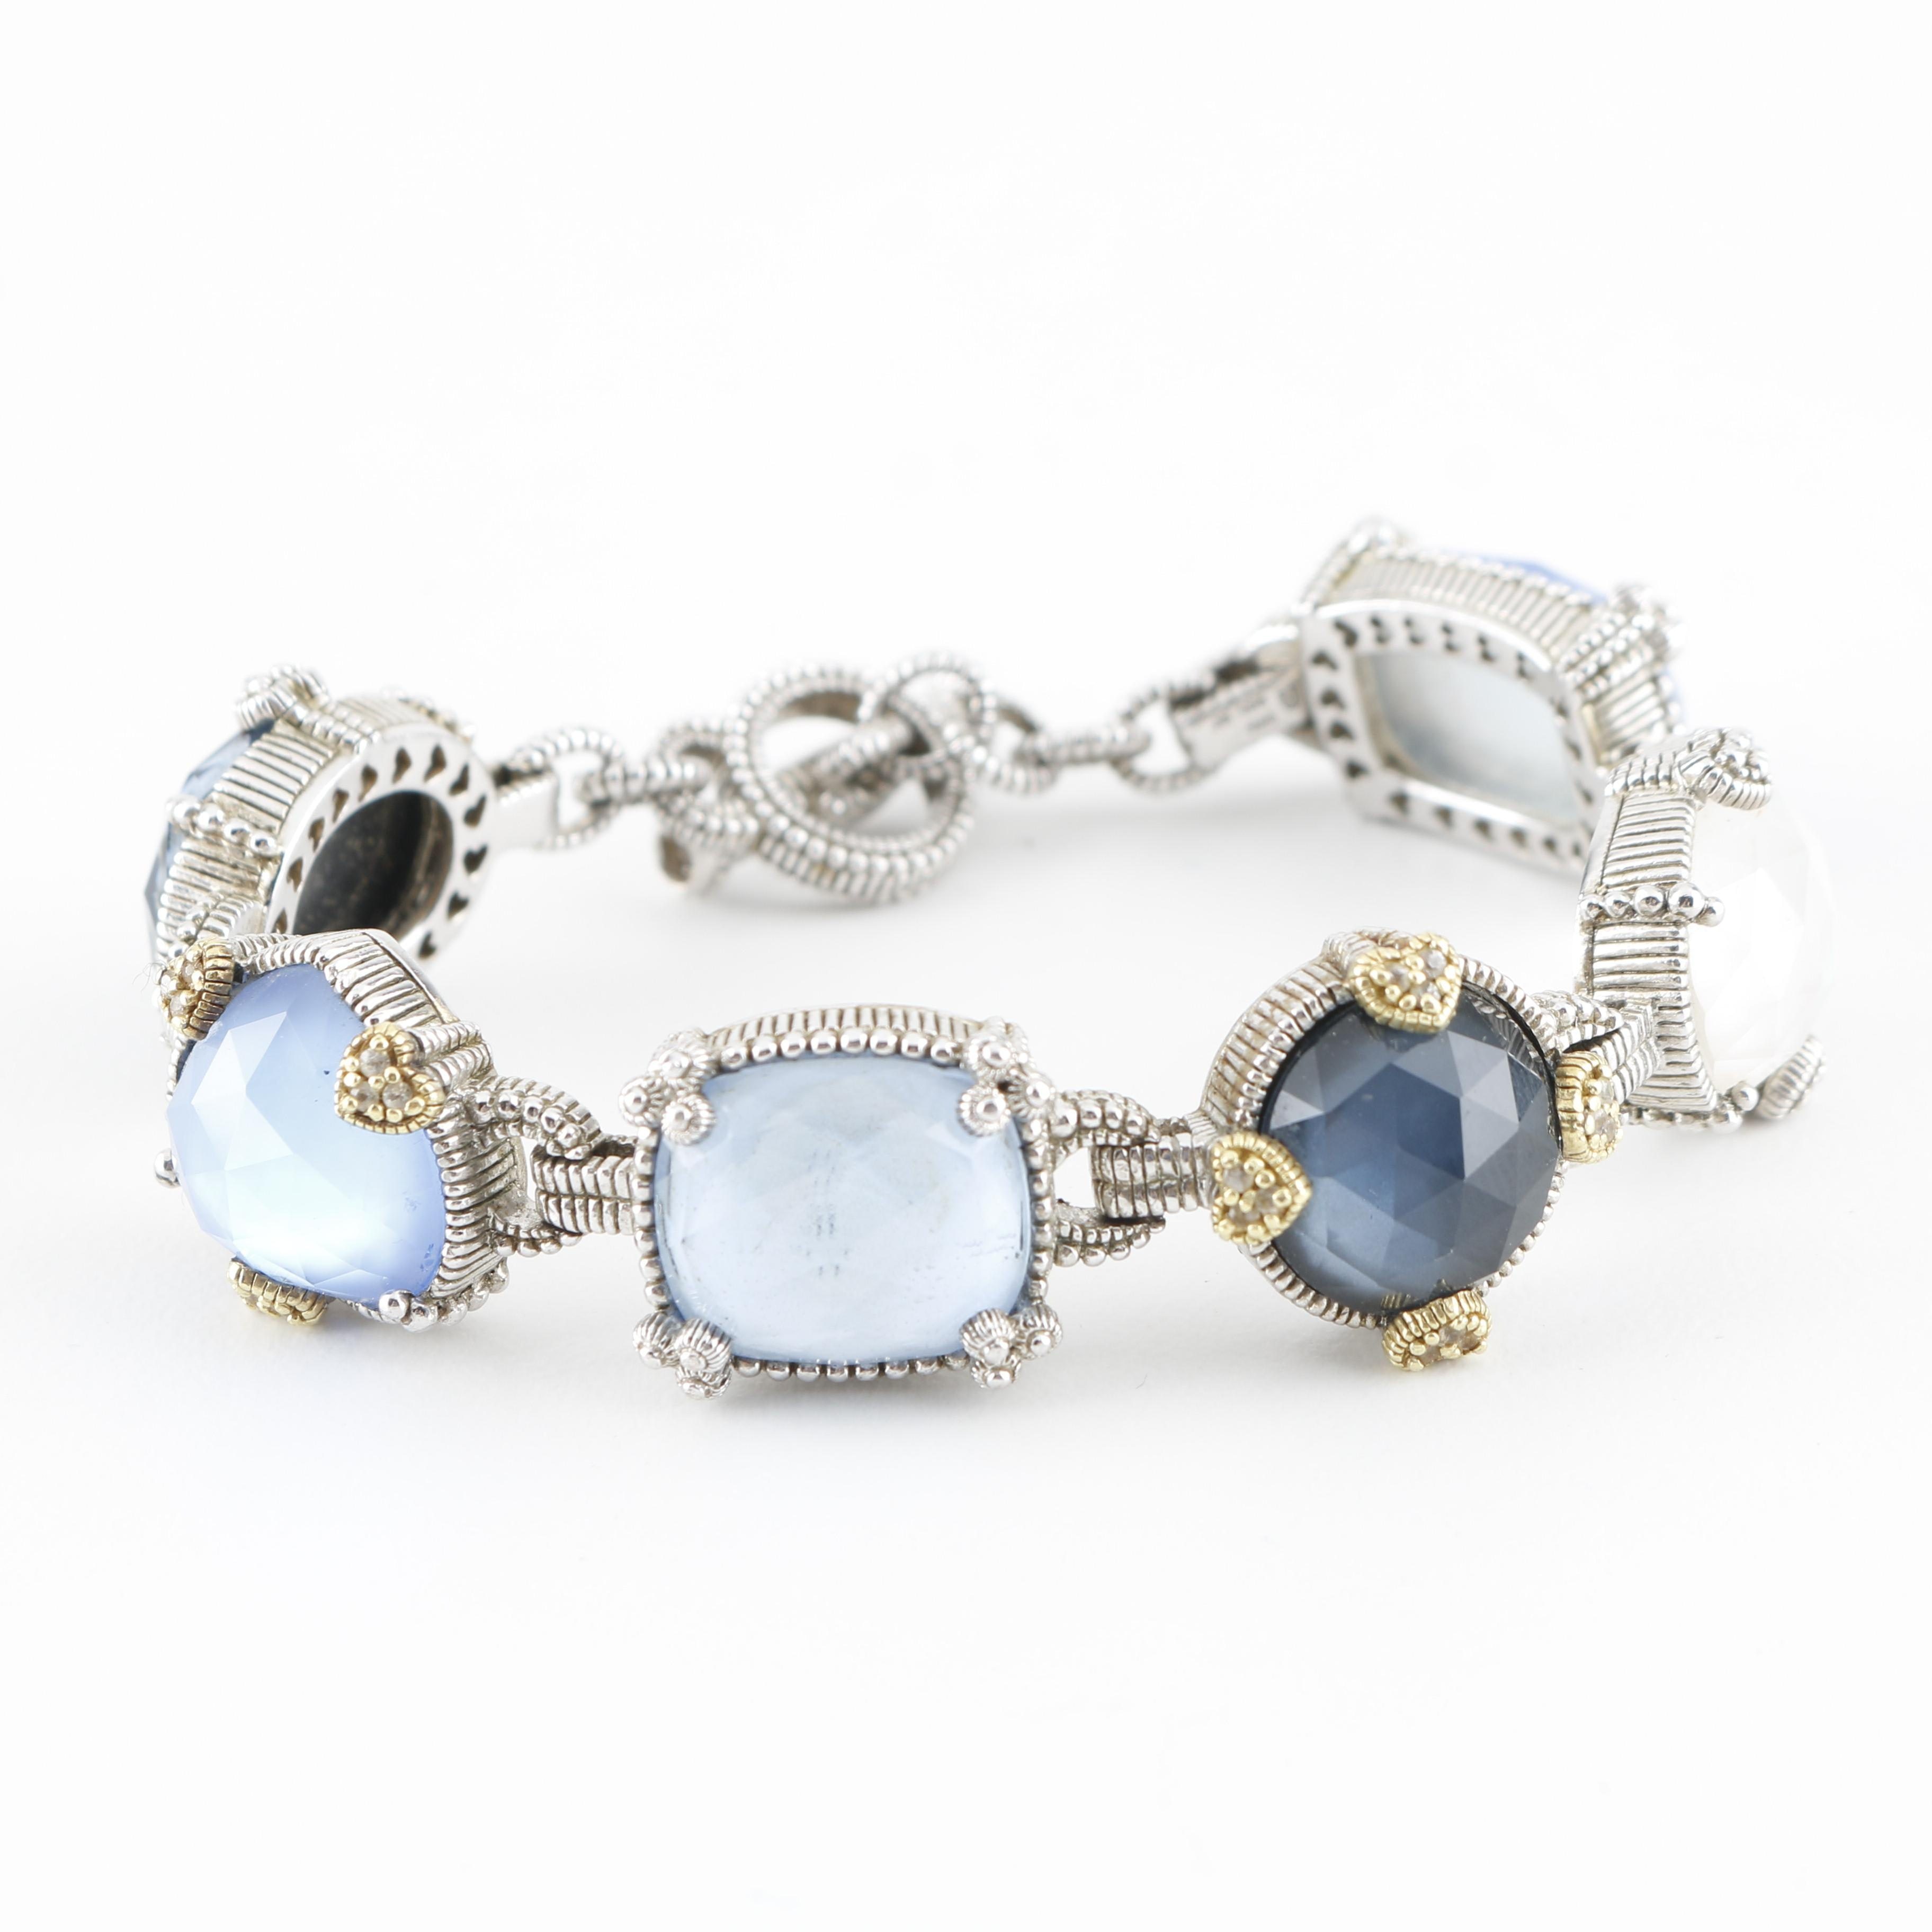 Judith Ripka Sterling Silver Bracelet With 18K Yellow Gold Accents